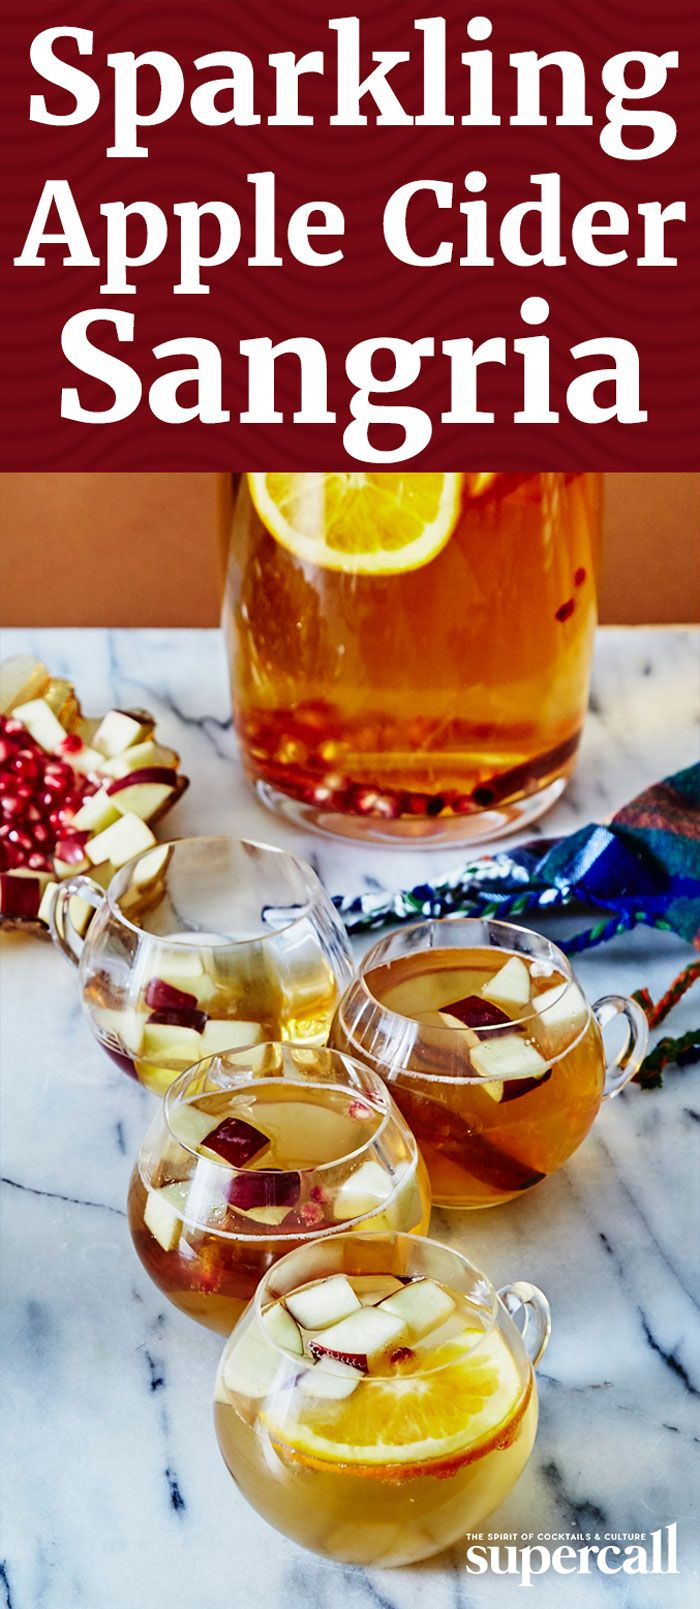 Apple Cider Sangria How To Make The Best Sparkling Apple Cider Sangria Recipe Apple Cider Sangria Cider Sangria Easy Drink Recipes